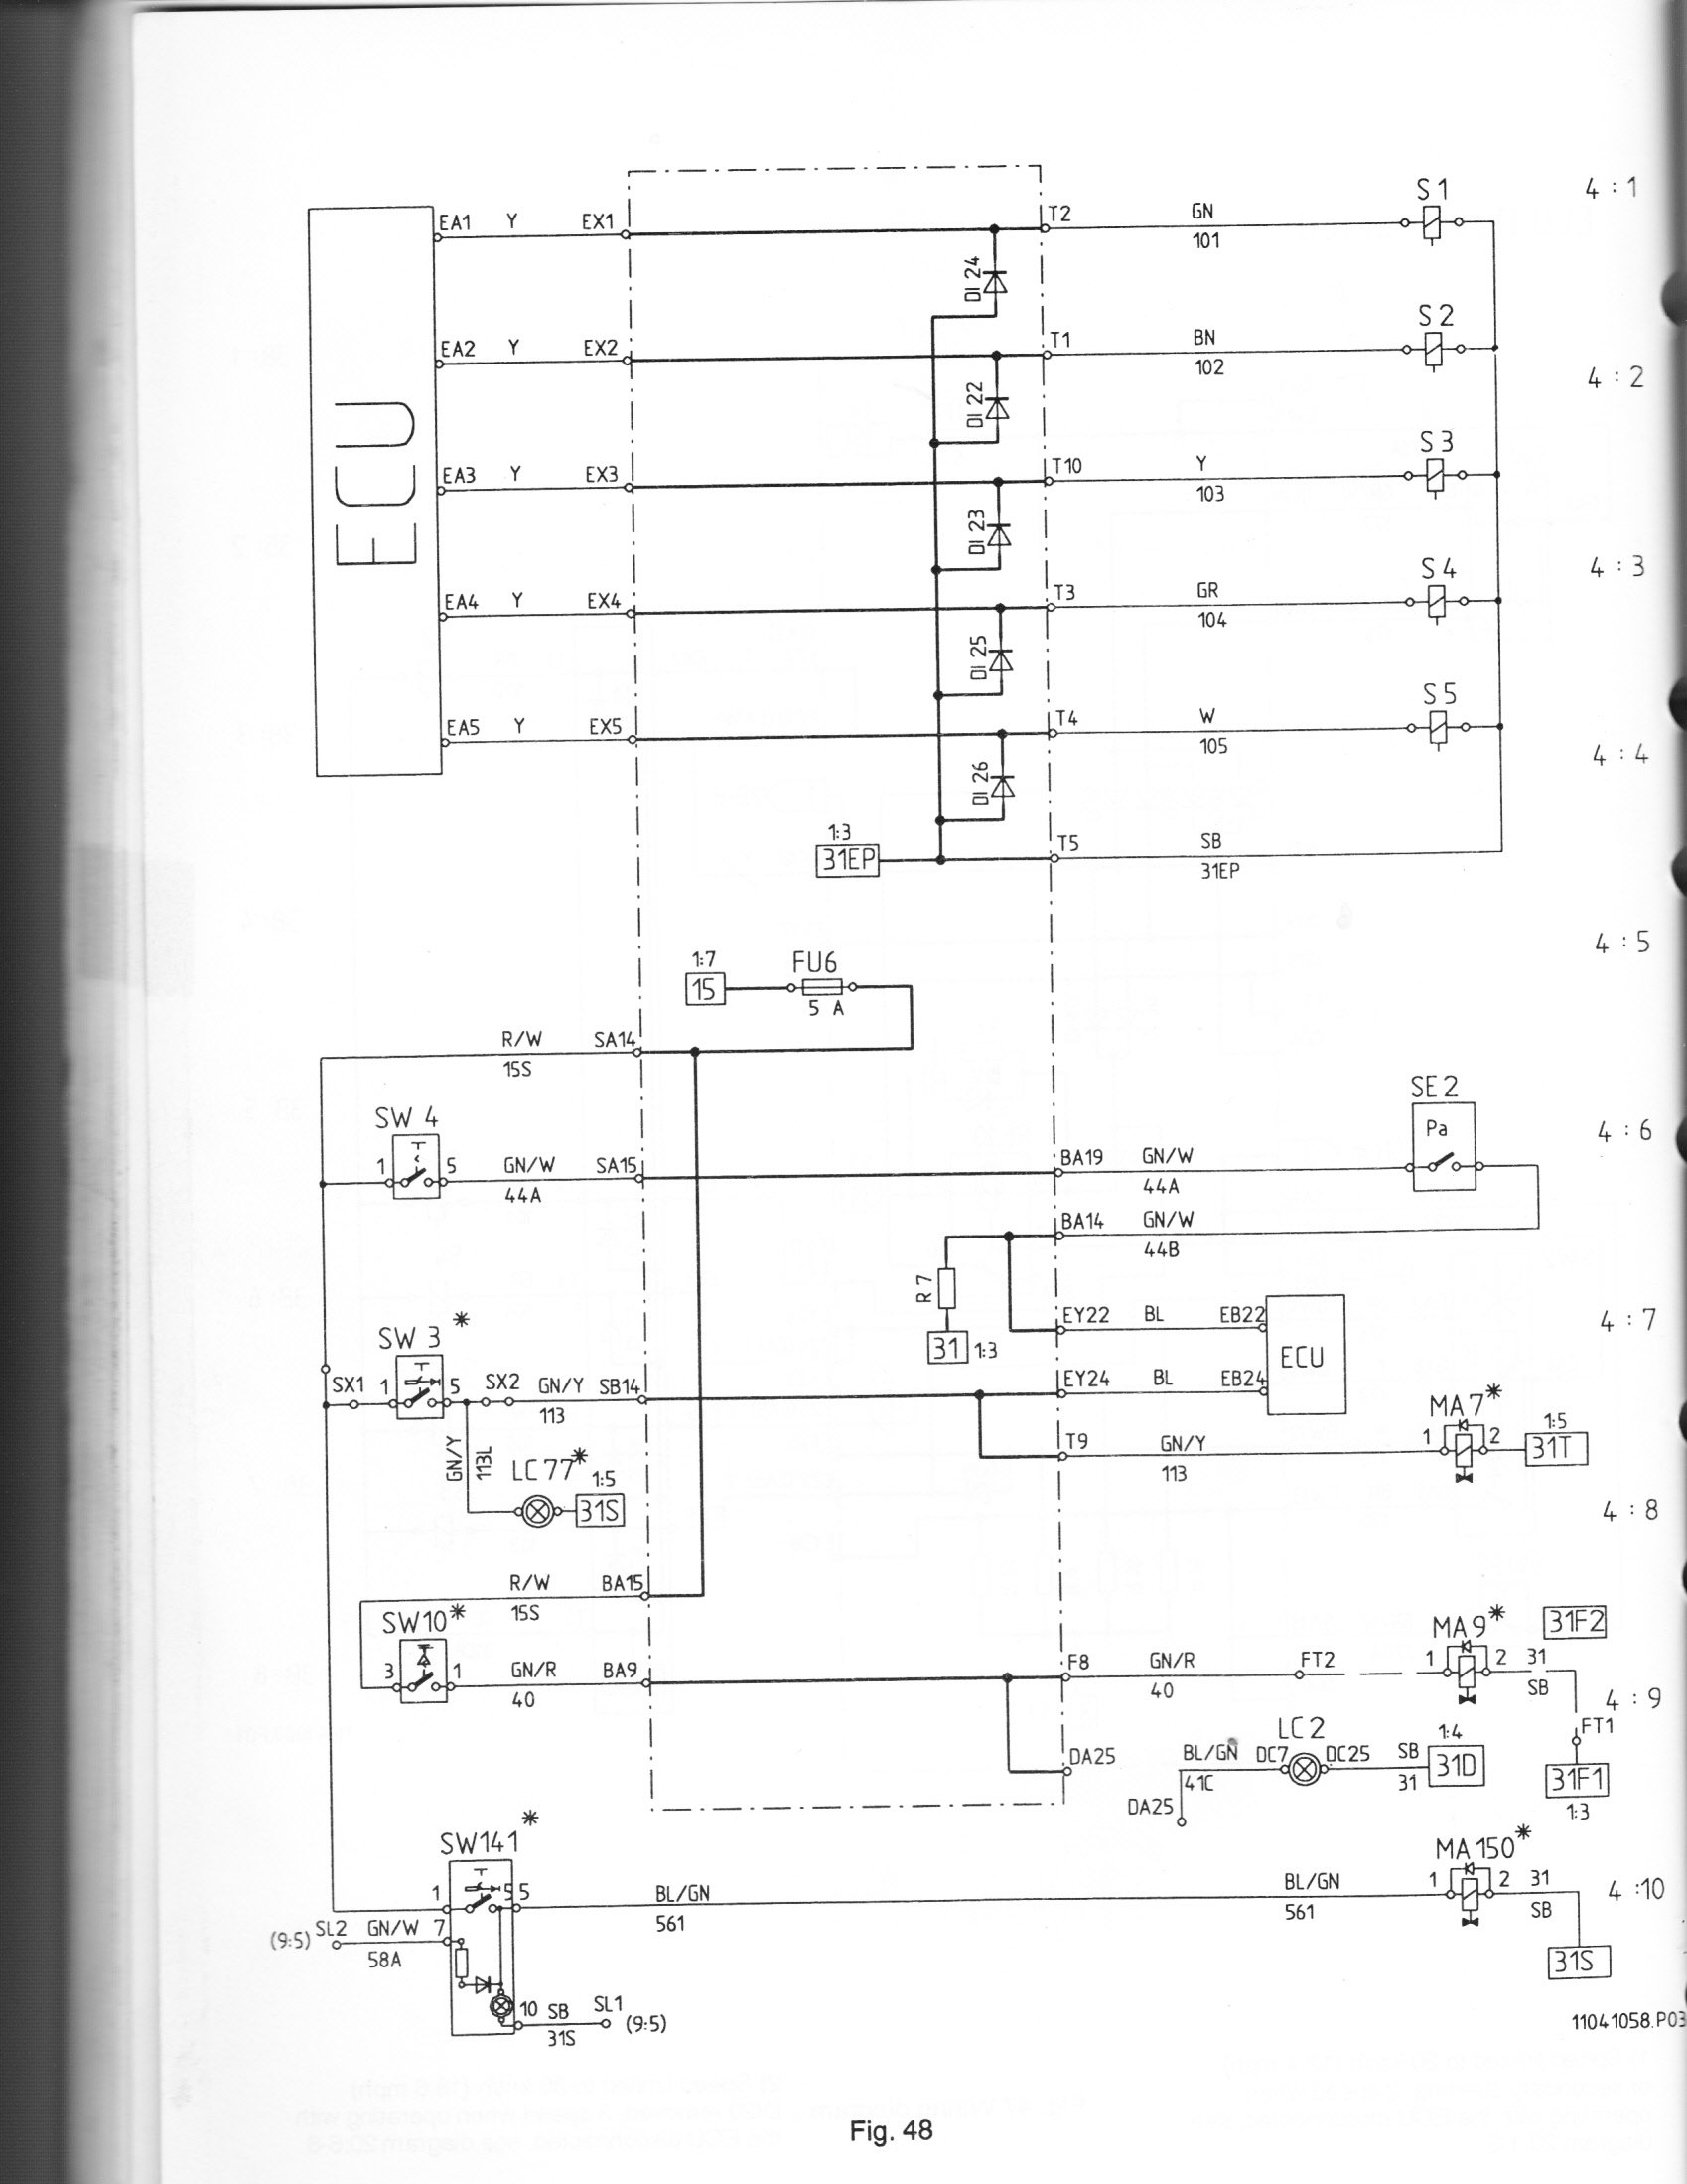 Volvo L70c Wiring Diagram - Wiring Diagram Direct mass-pipe -  mass-pipe.siciliabeb.it | Volvo L70c Wiring Diagram |  | mass-pipe.siciliabeb.it